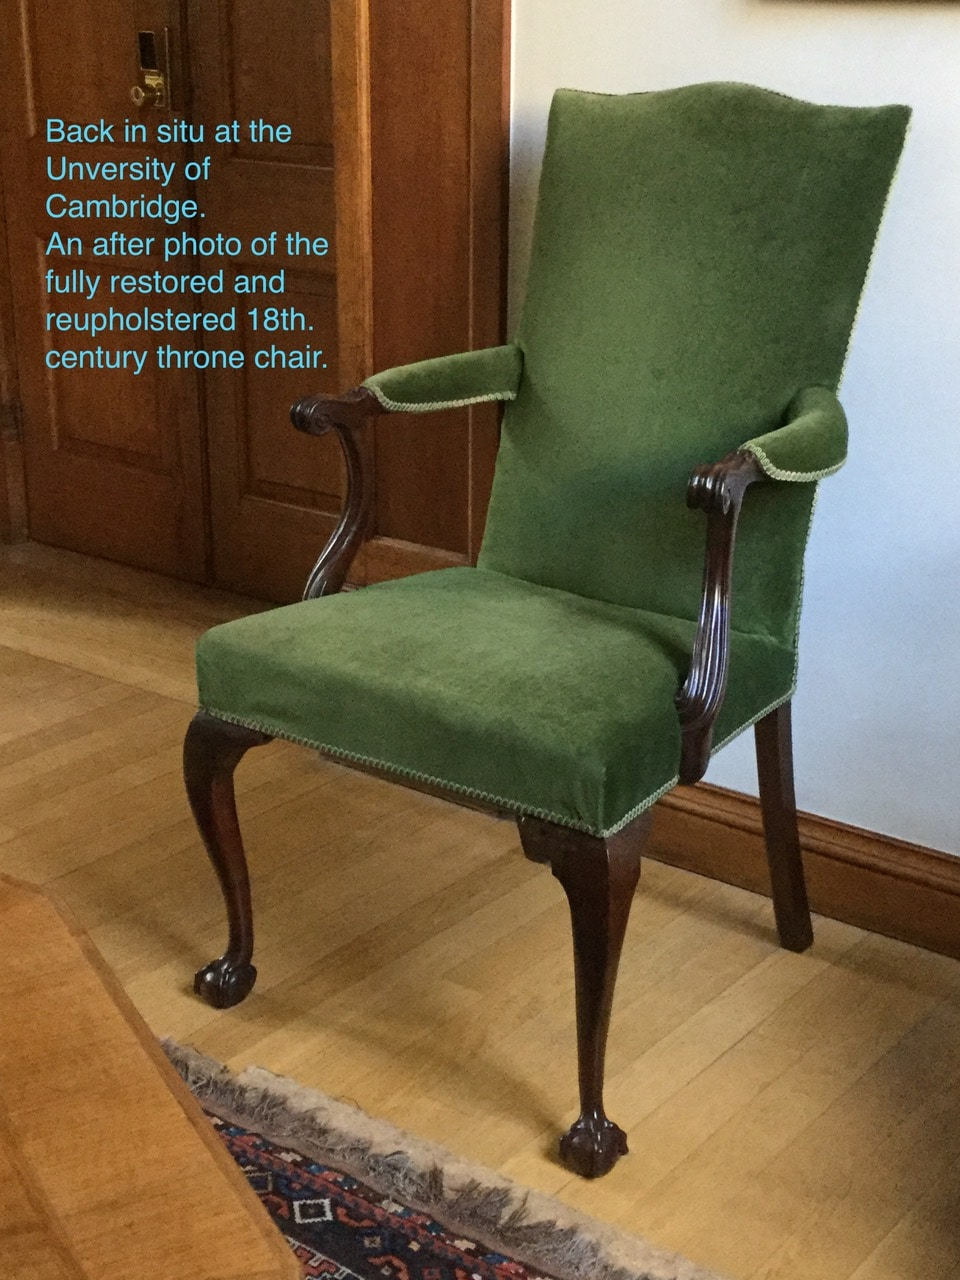 Back in situ at the University of Cambridge. An after photo of the fully restored and reupholstered 18th century throne chair.